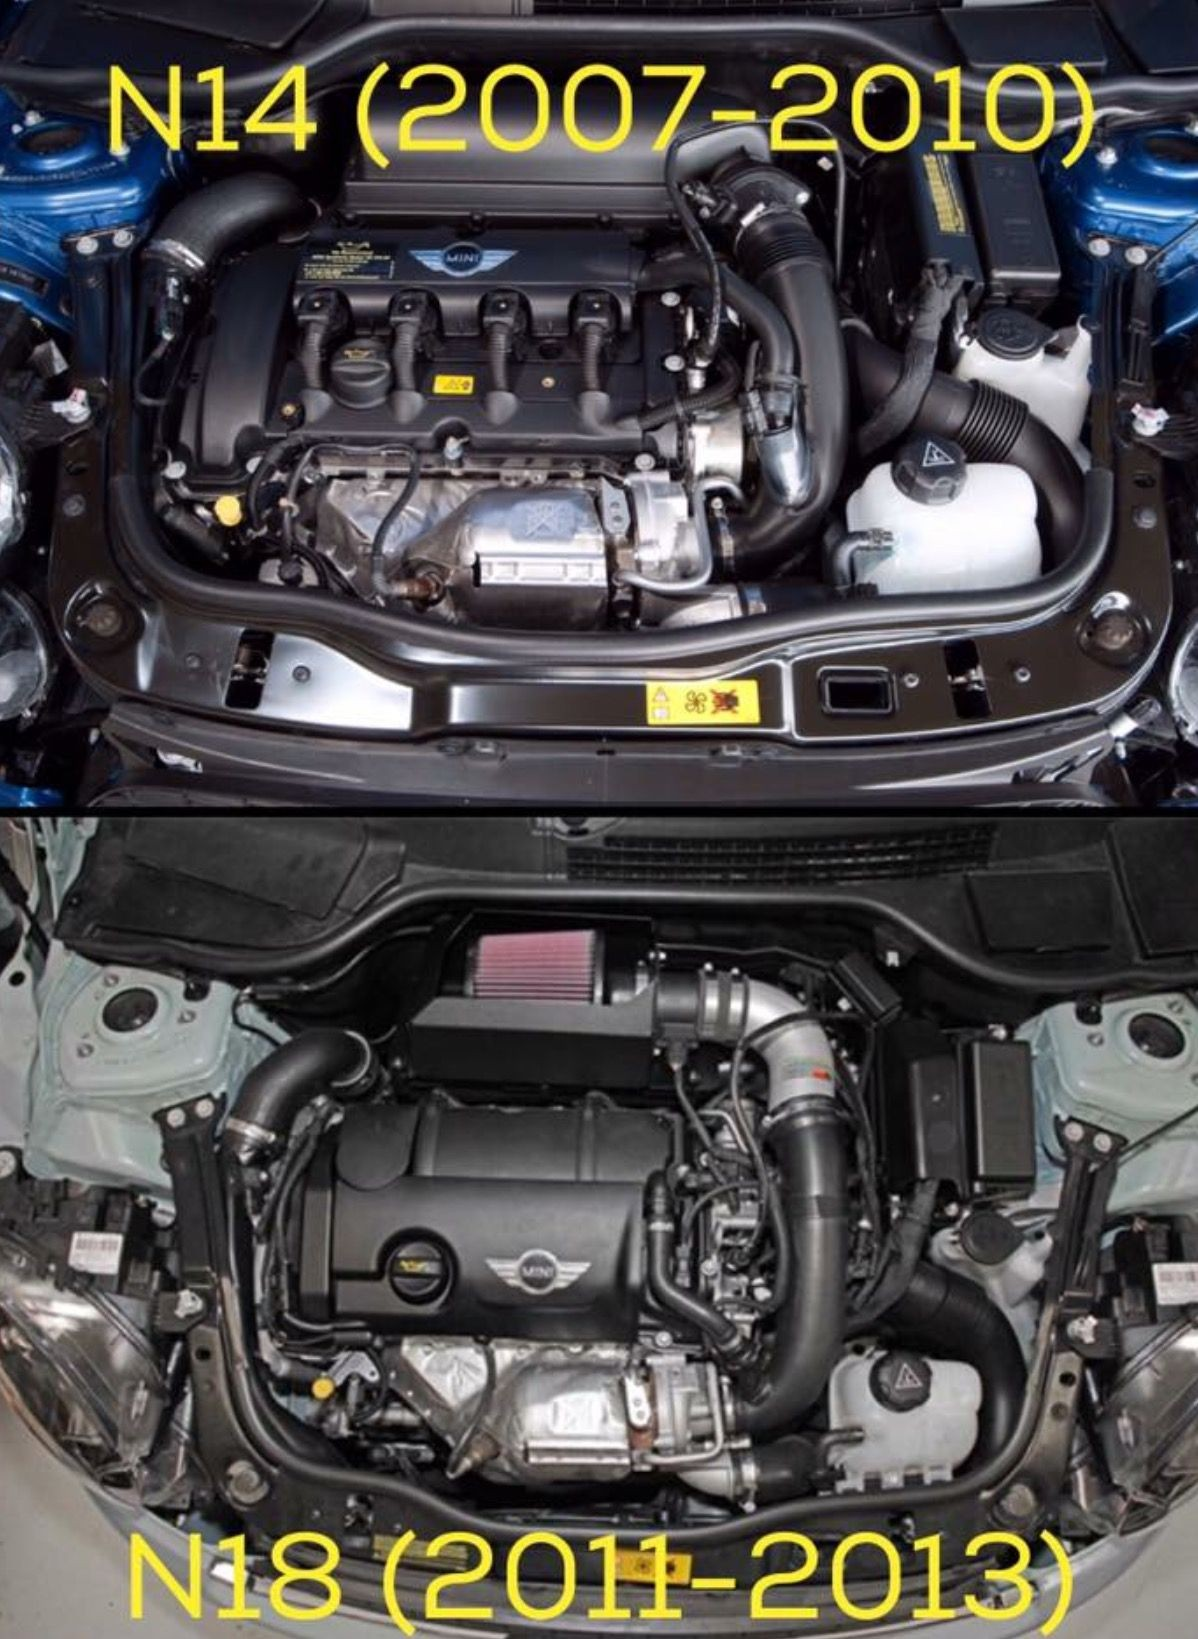 Mini Cooper One 2017 Engine Diagram Know Your Engine Of Mini Cooper One 2017 Engine Diagram